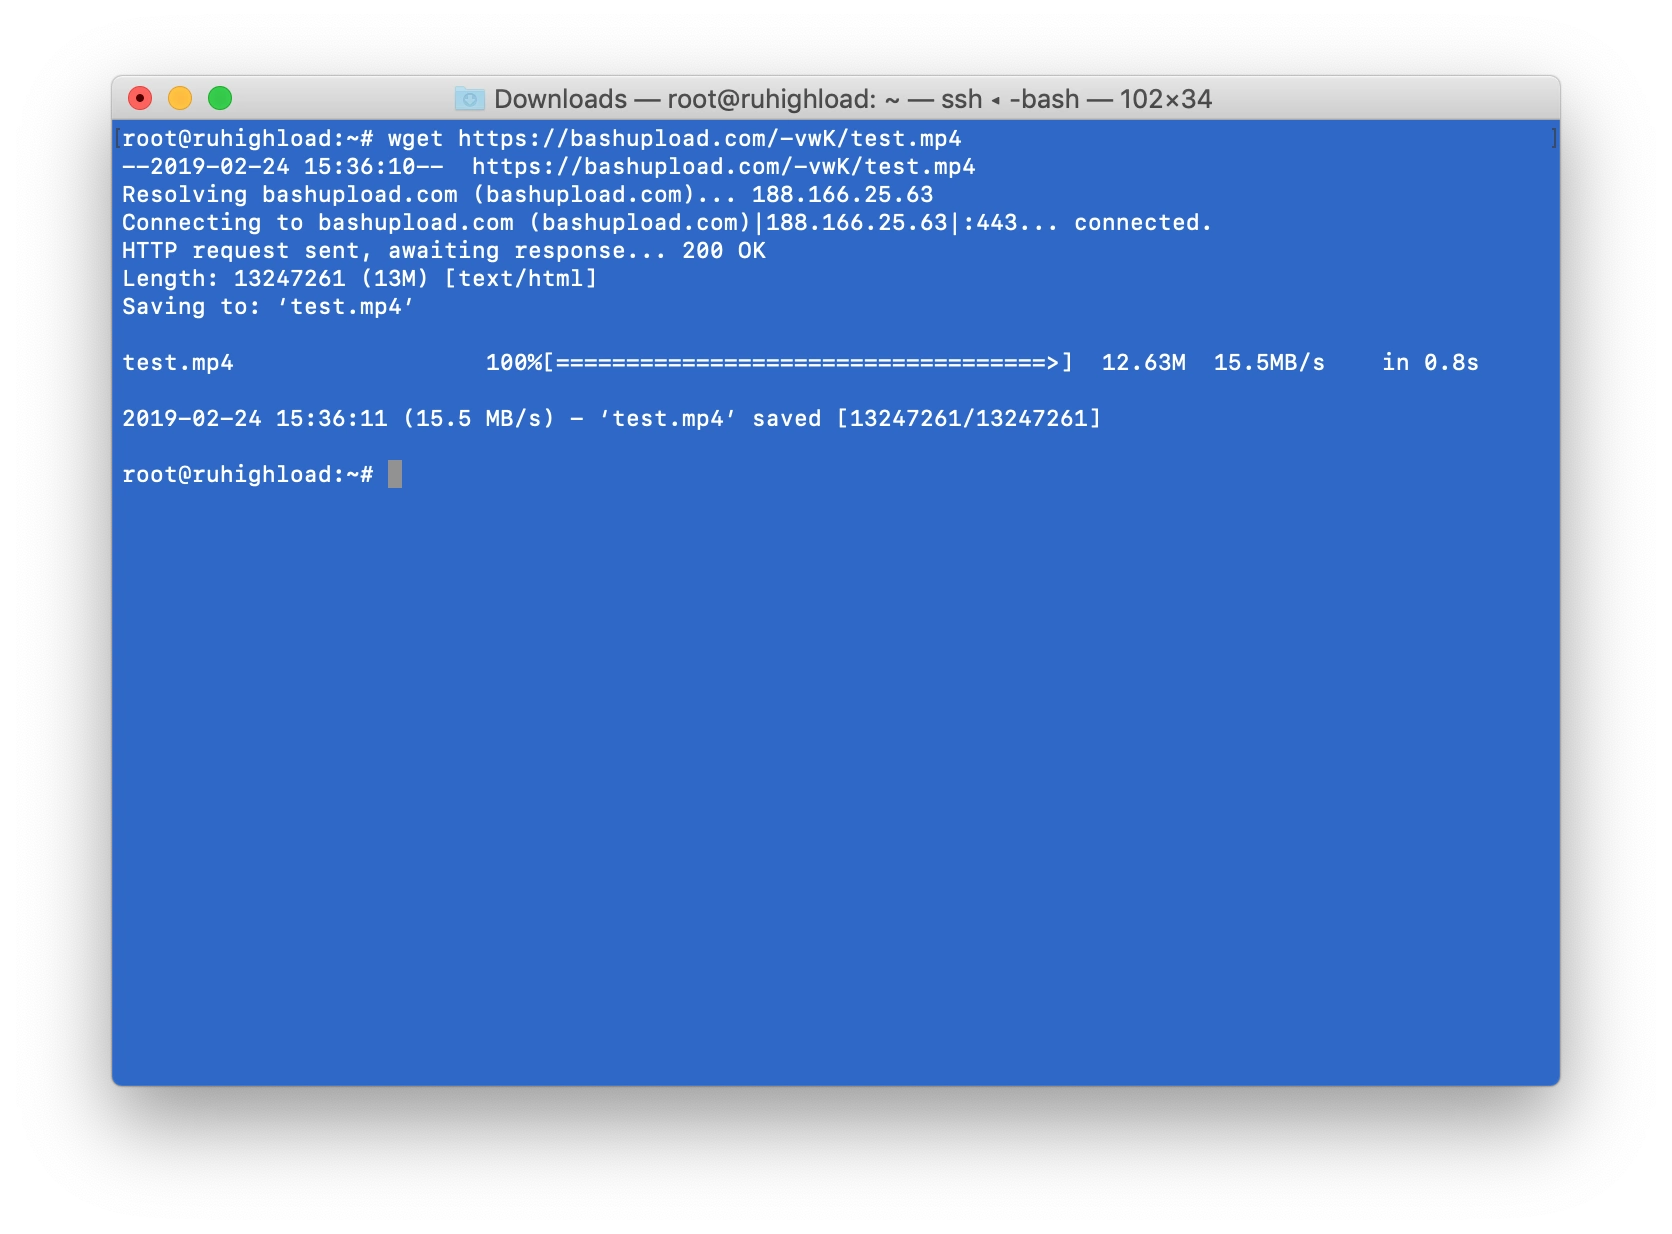 Image of downloading file in a command line